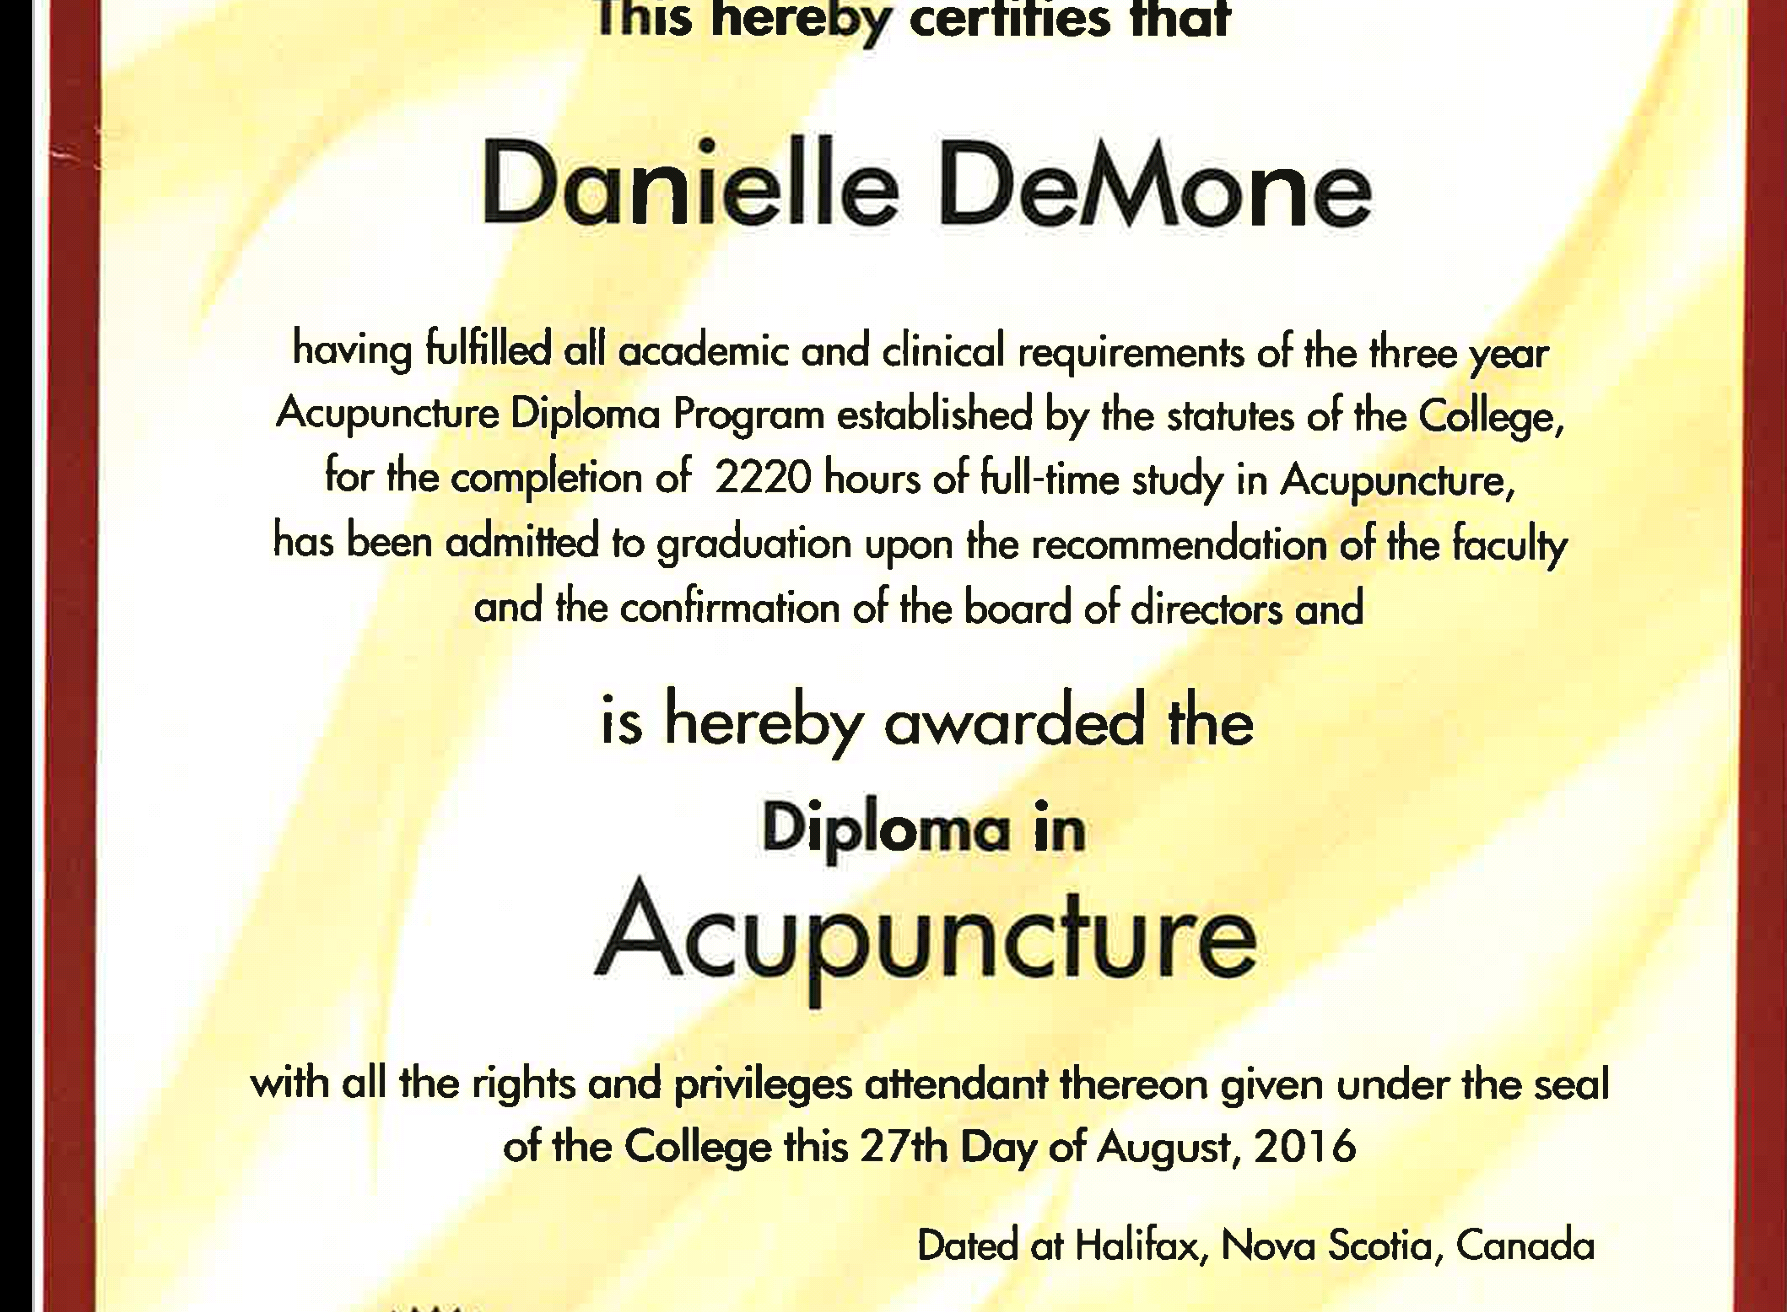 Graduate of Canadian Collage of Acupuncture and Traditional Chinese Medicine Diploma Program